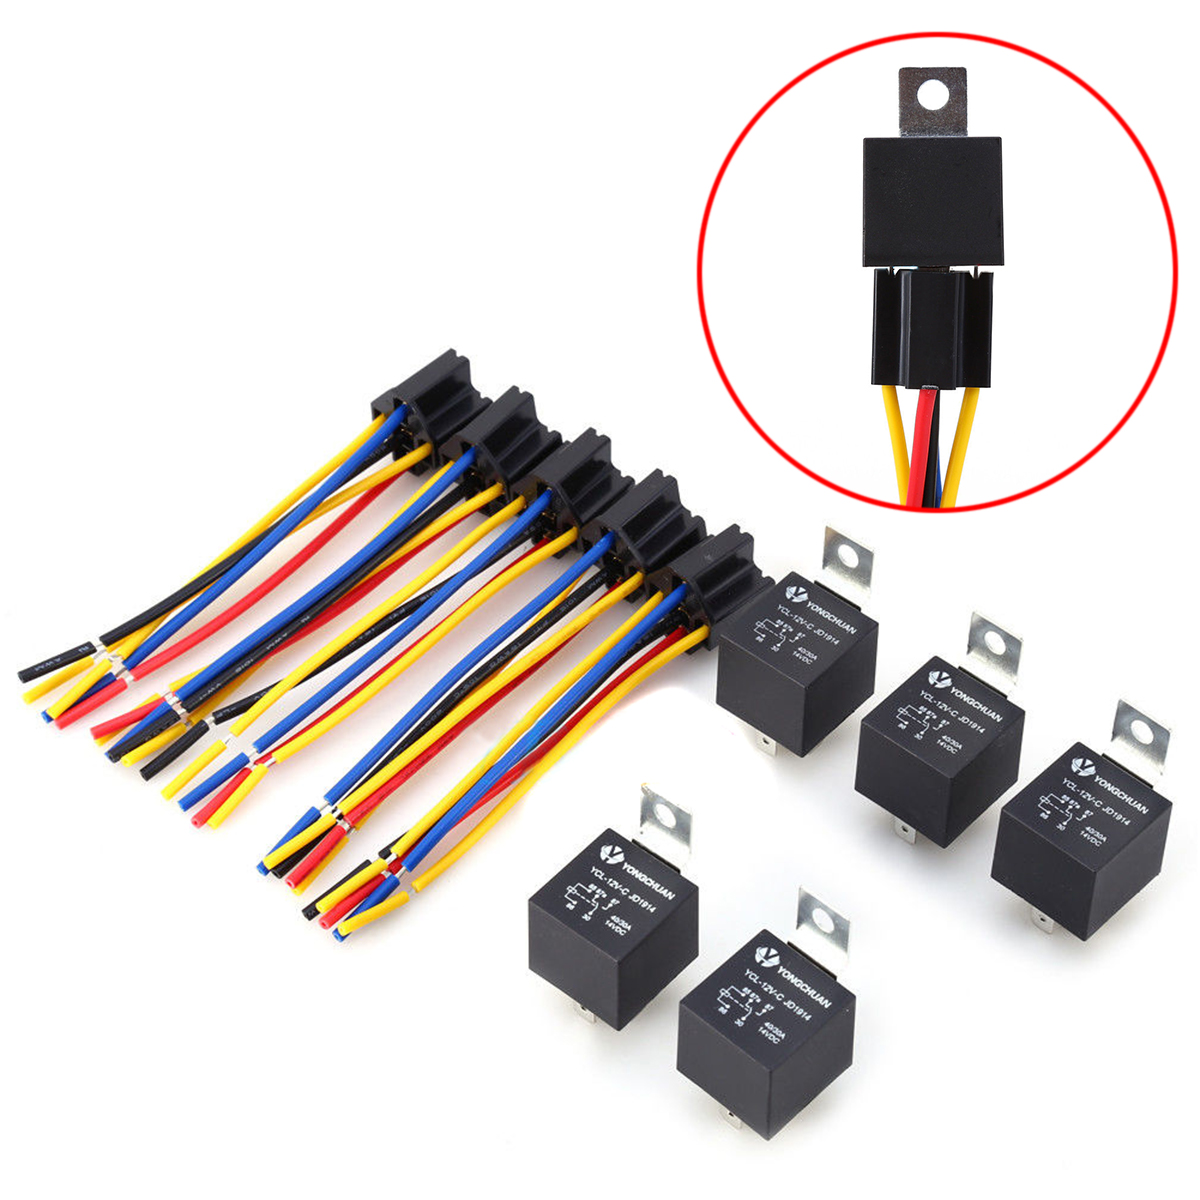 5 Set DC 12V 40A AMP Relay & Socket SPDT 5 Pin 5 Wire YCL-12V-C JD1914 For Auto Car Truck Accessories